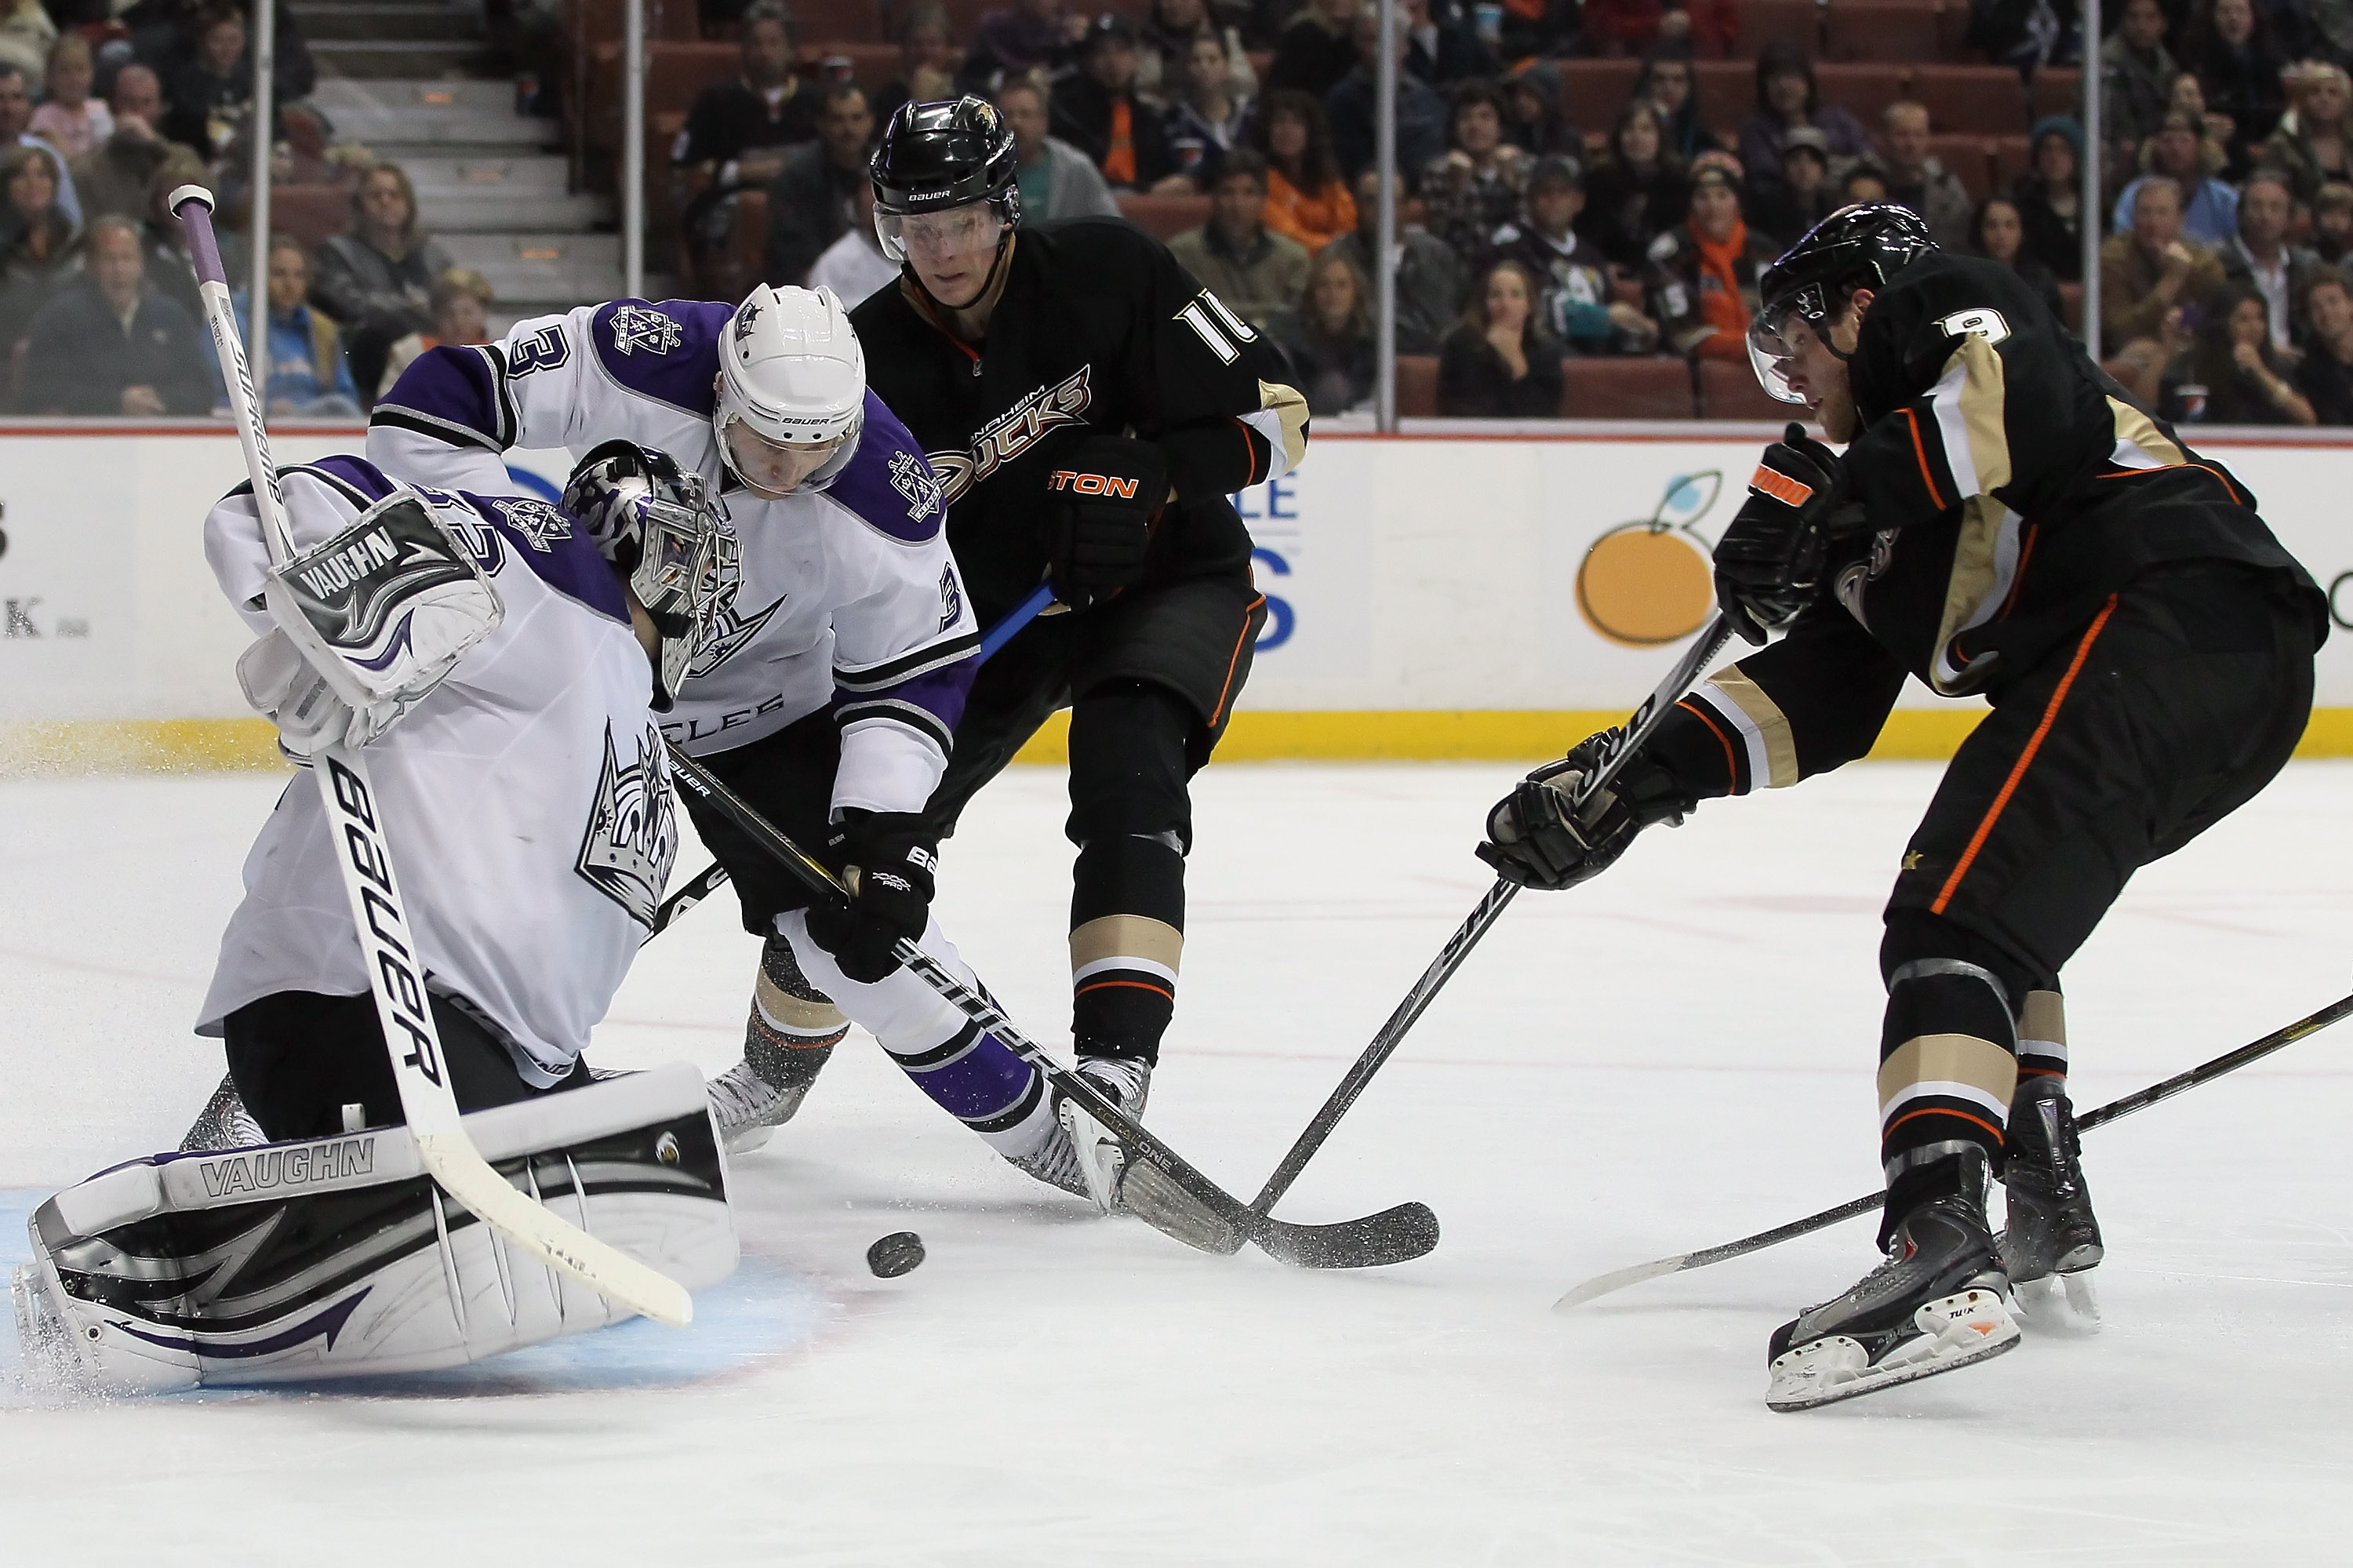 ANAHEIM, CA - NOVEMBER 29:  (L-R) Goaltender Jonathan Quick #32 of the Los Angeles Kings makes a save, as teammate Jack Johnson #3 defends the puck from Corey Perry #10 and Bobby Ryan #9 of the Anaheim Ducks during the third period at the Honda Center on